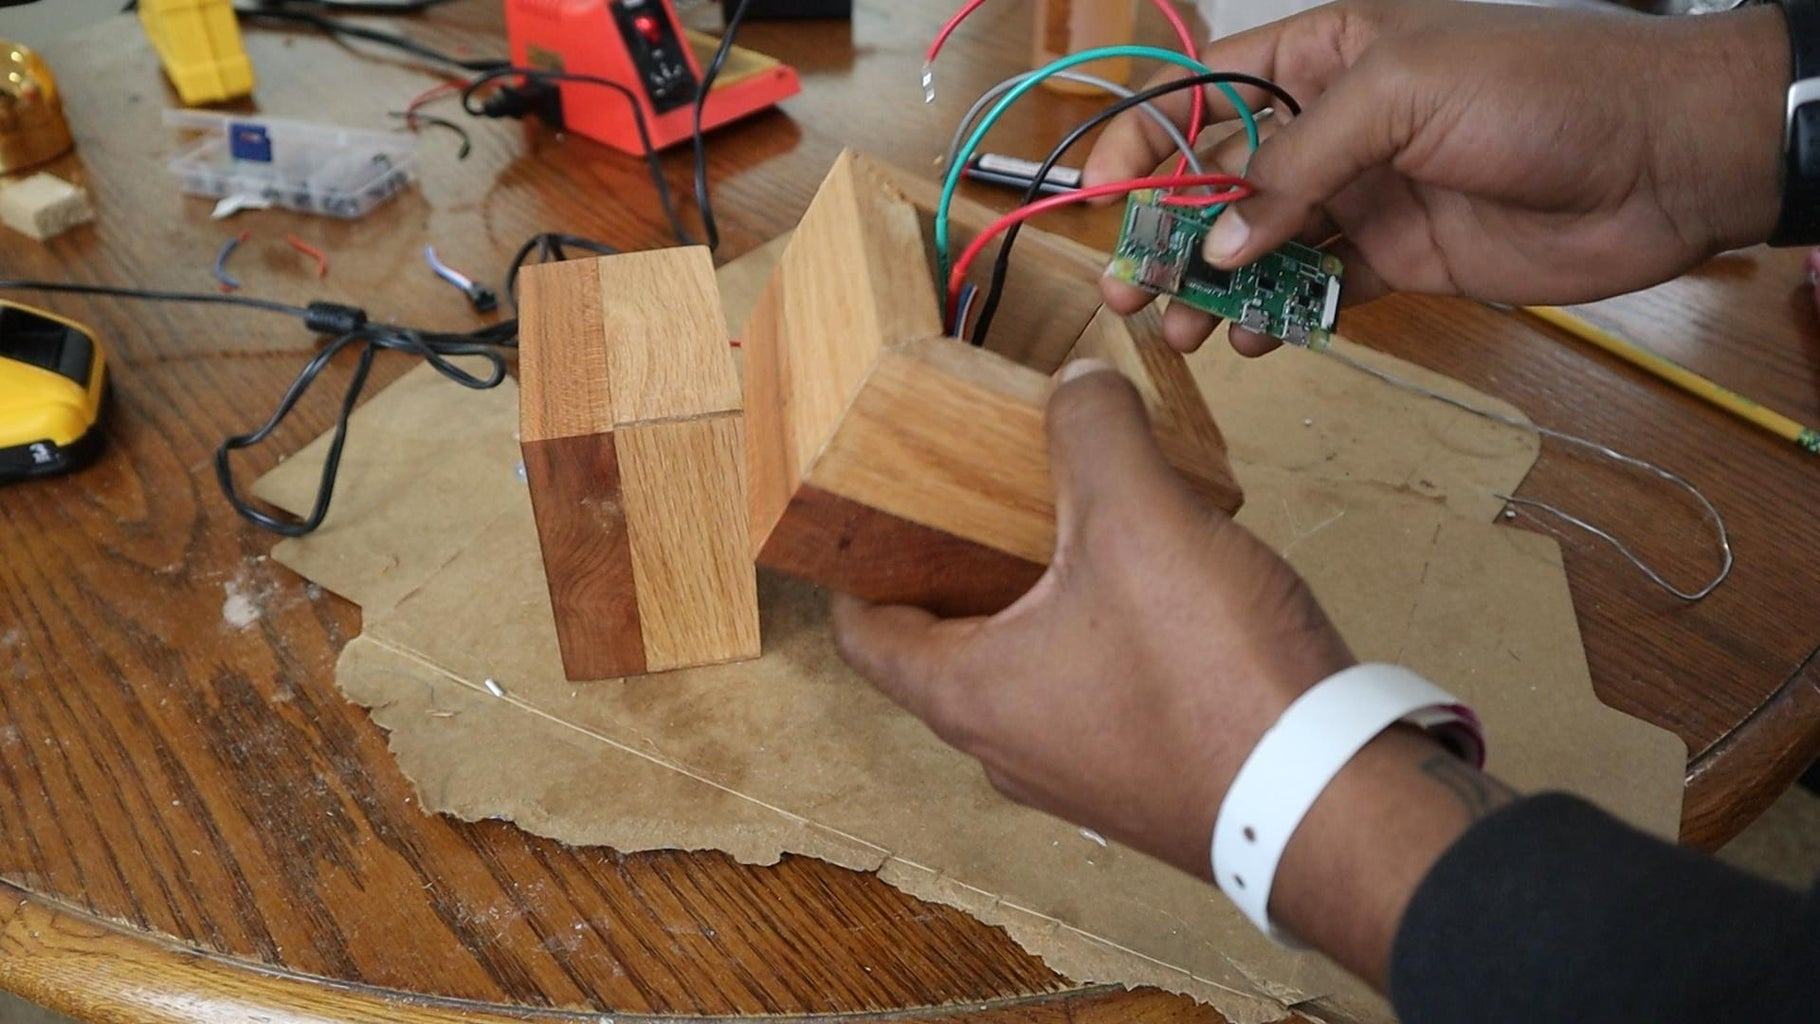 Solder Up the Circuit and Run the Code